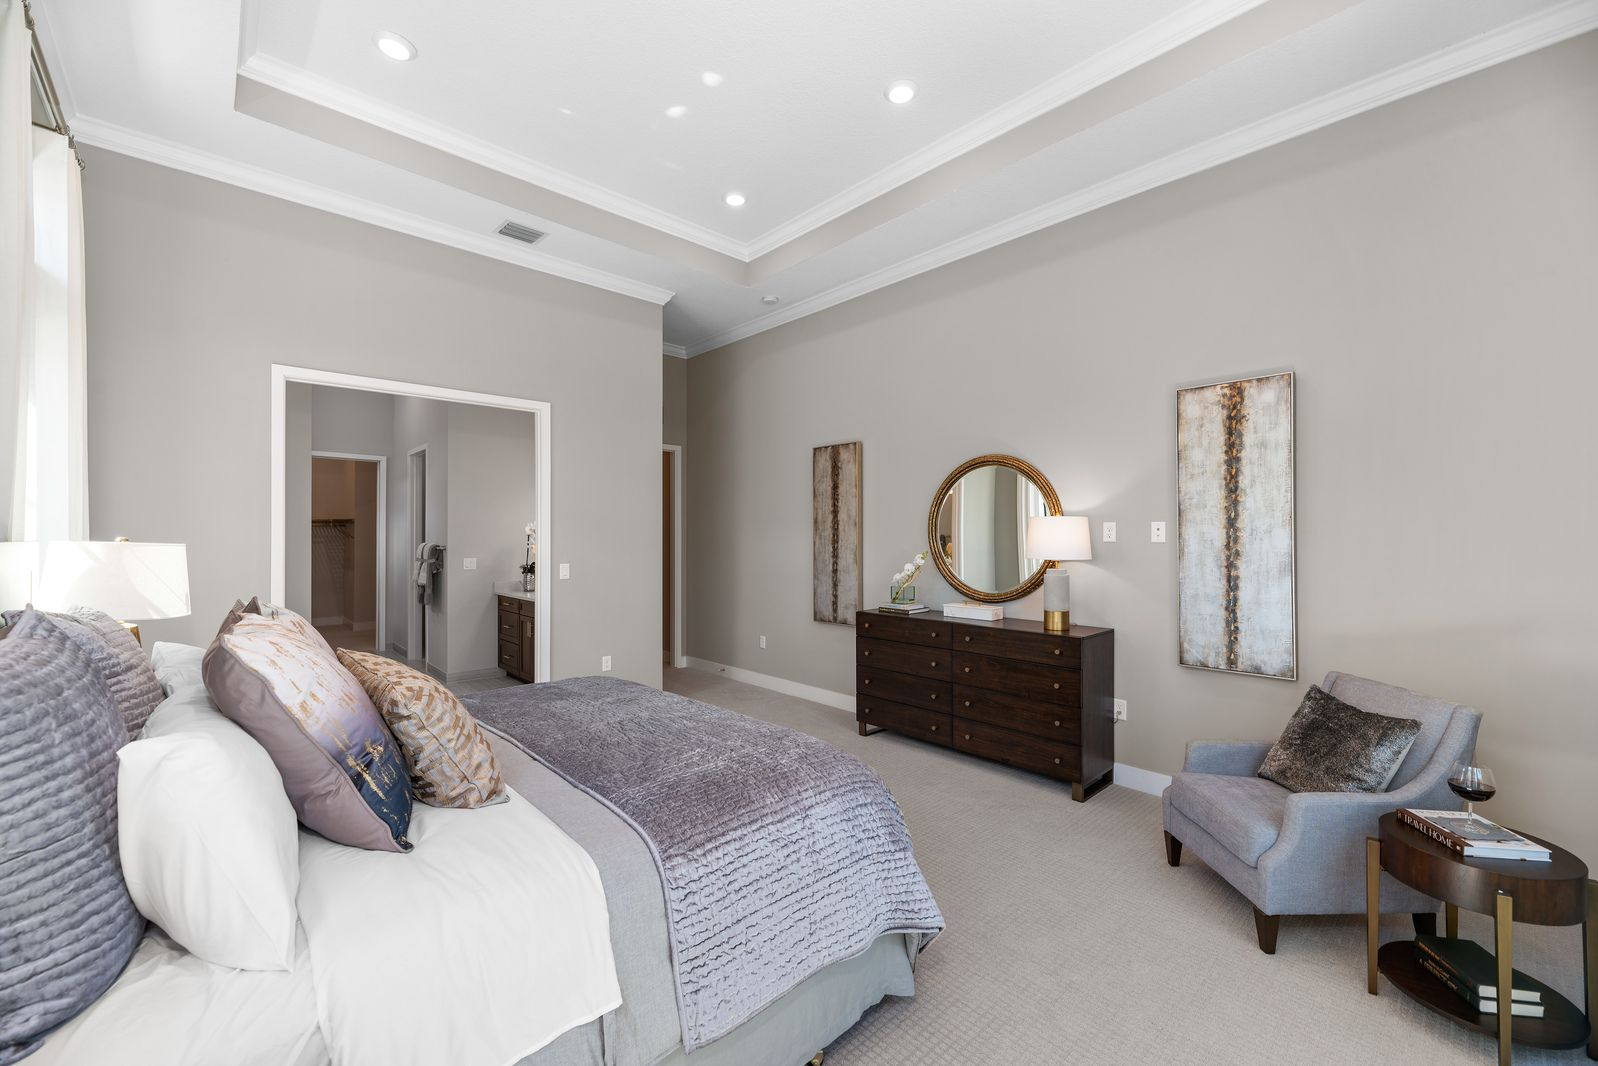 Bedroom featured in the Andros- The Biltmore Collection By Ryan Homes